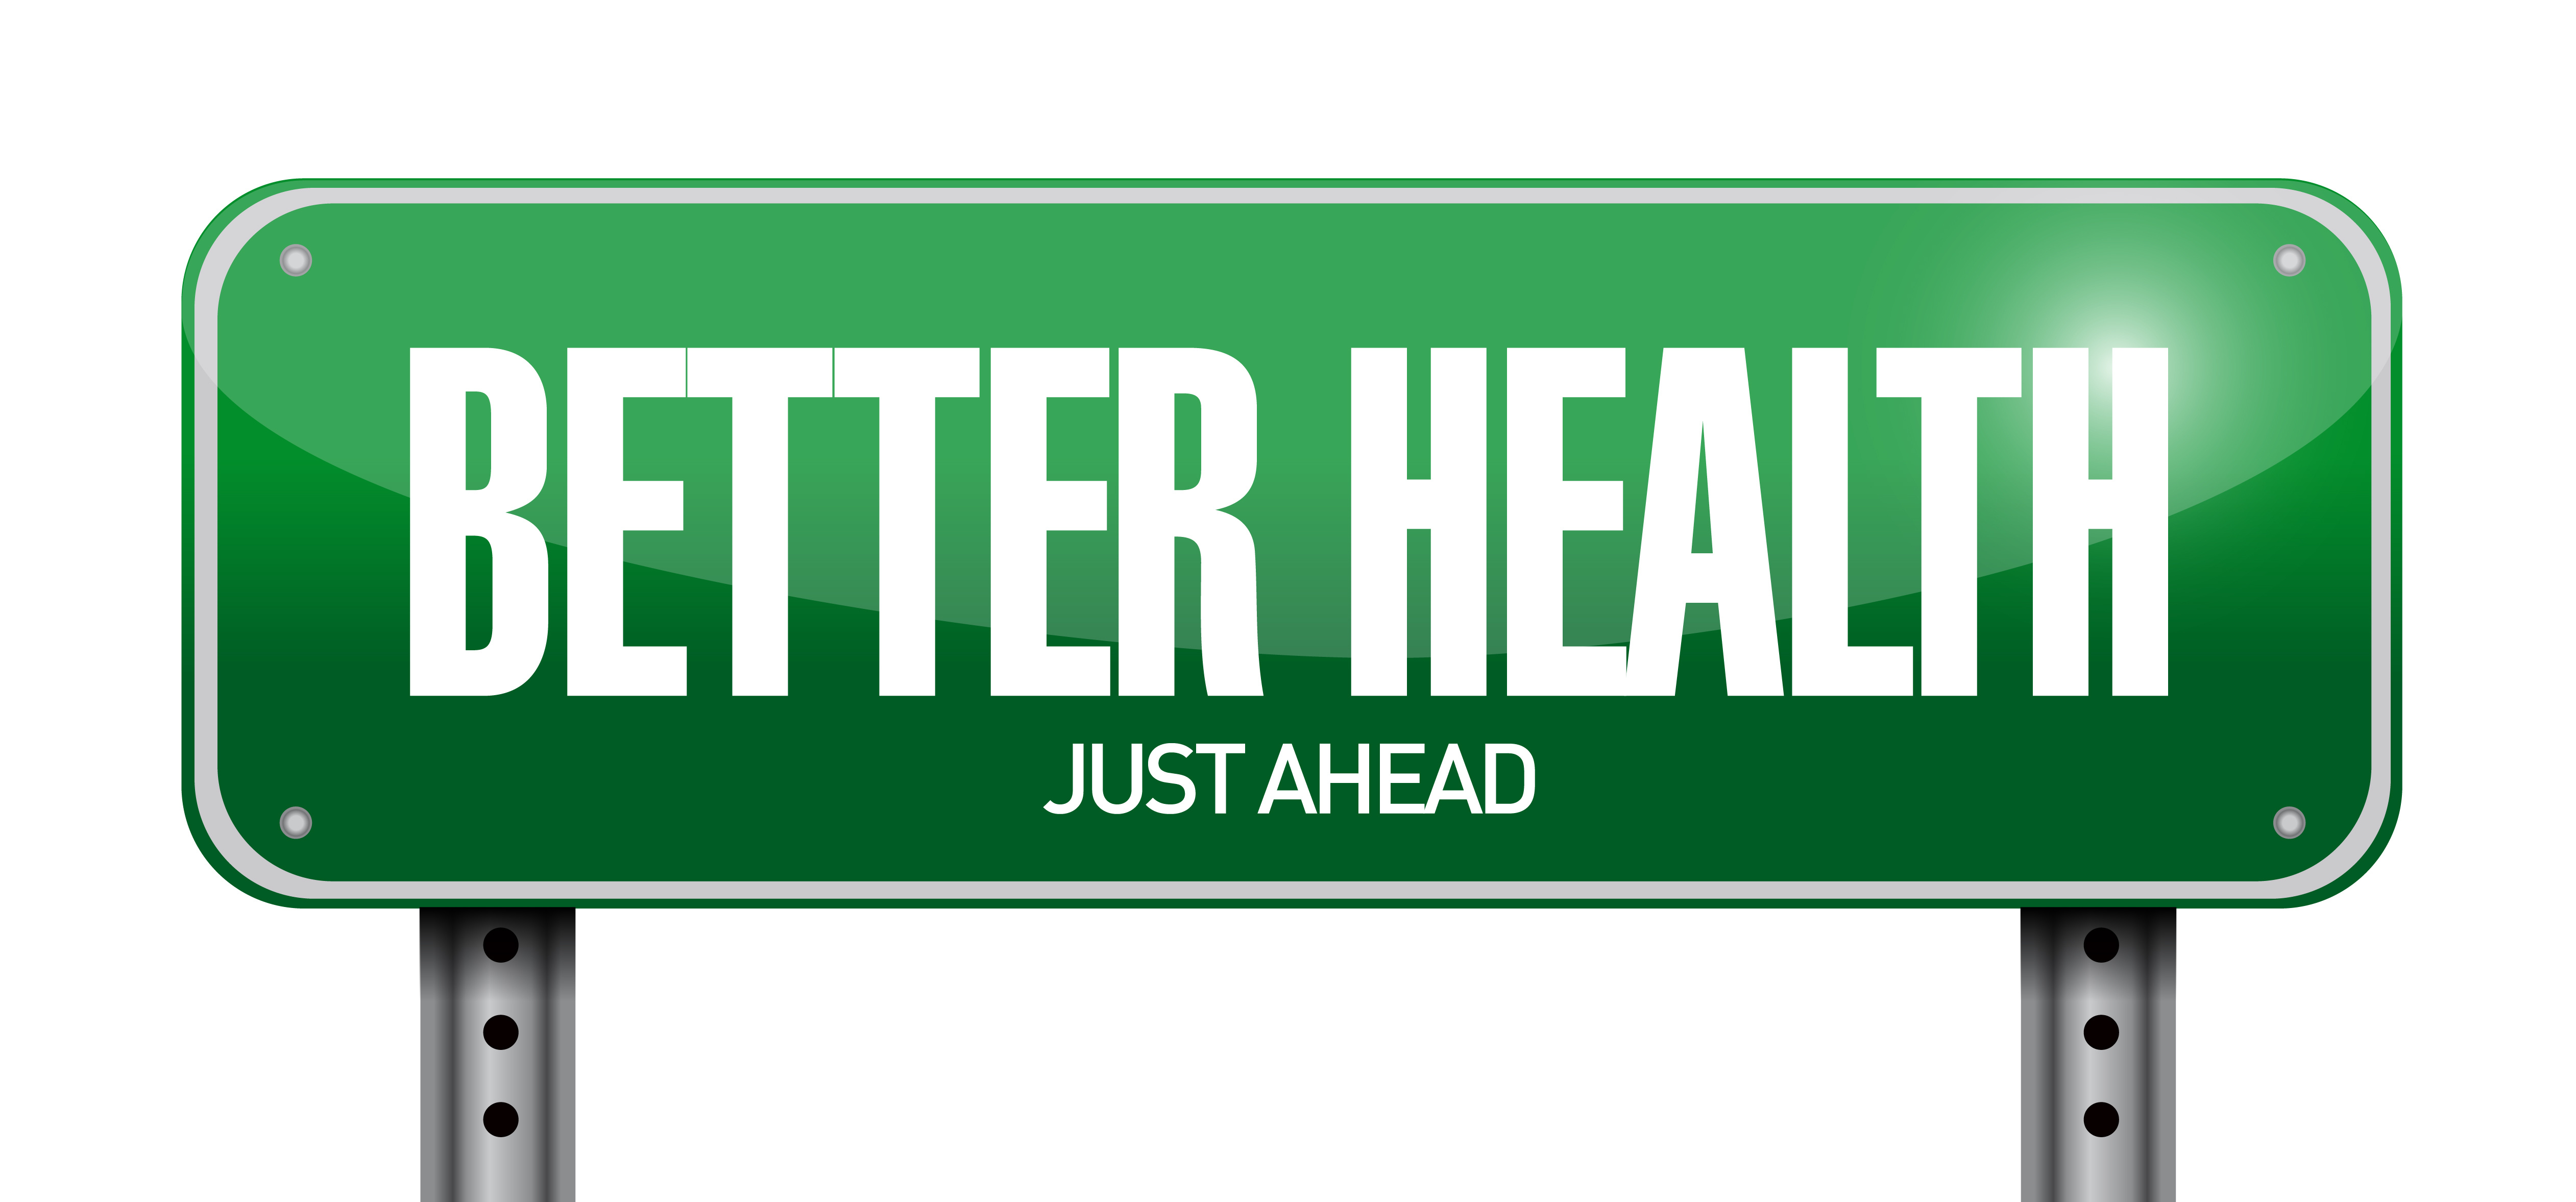 better health ahead